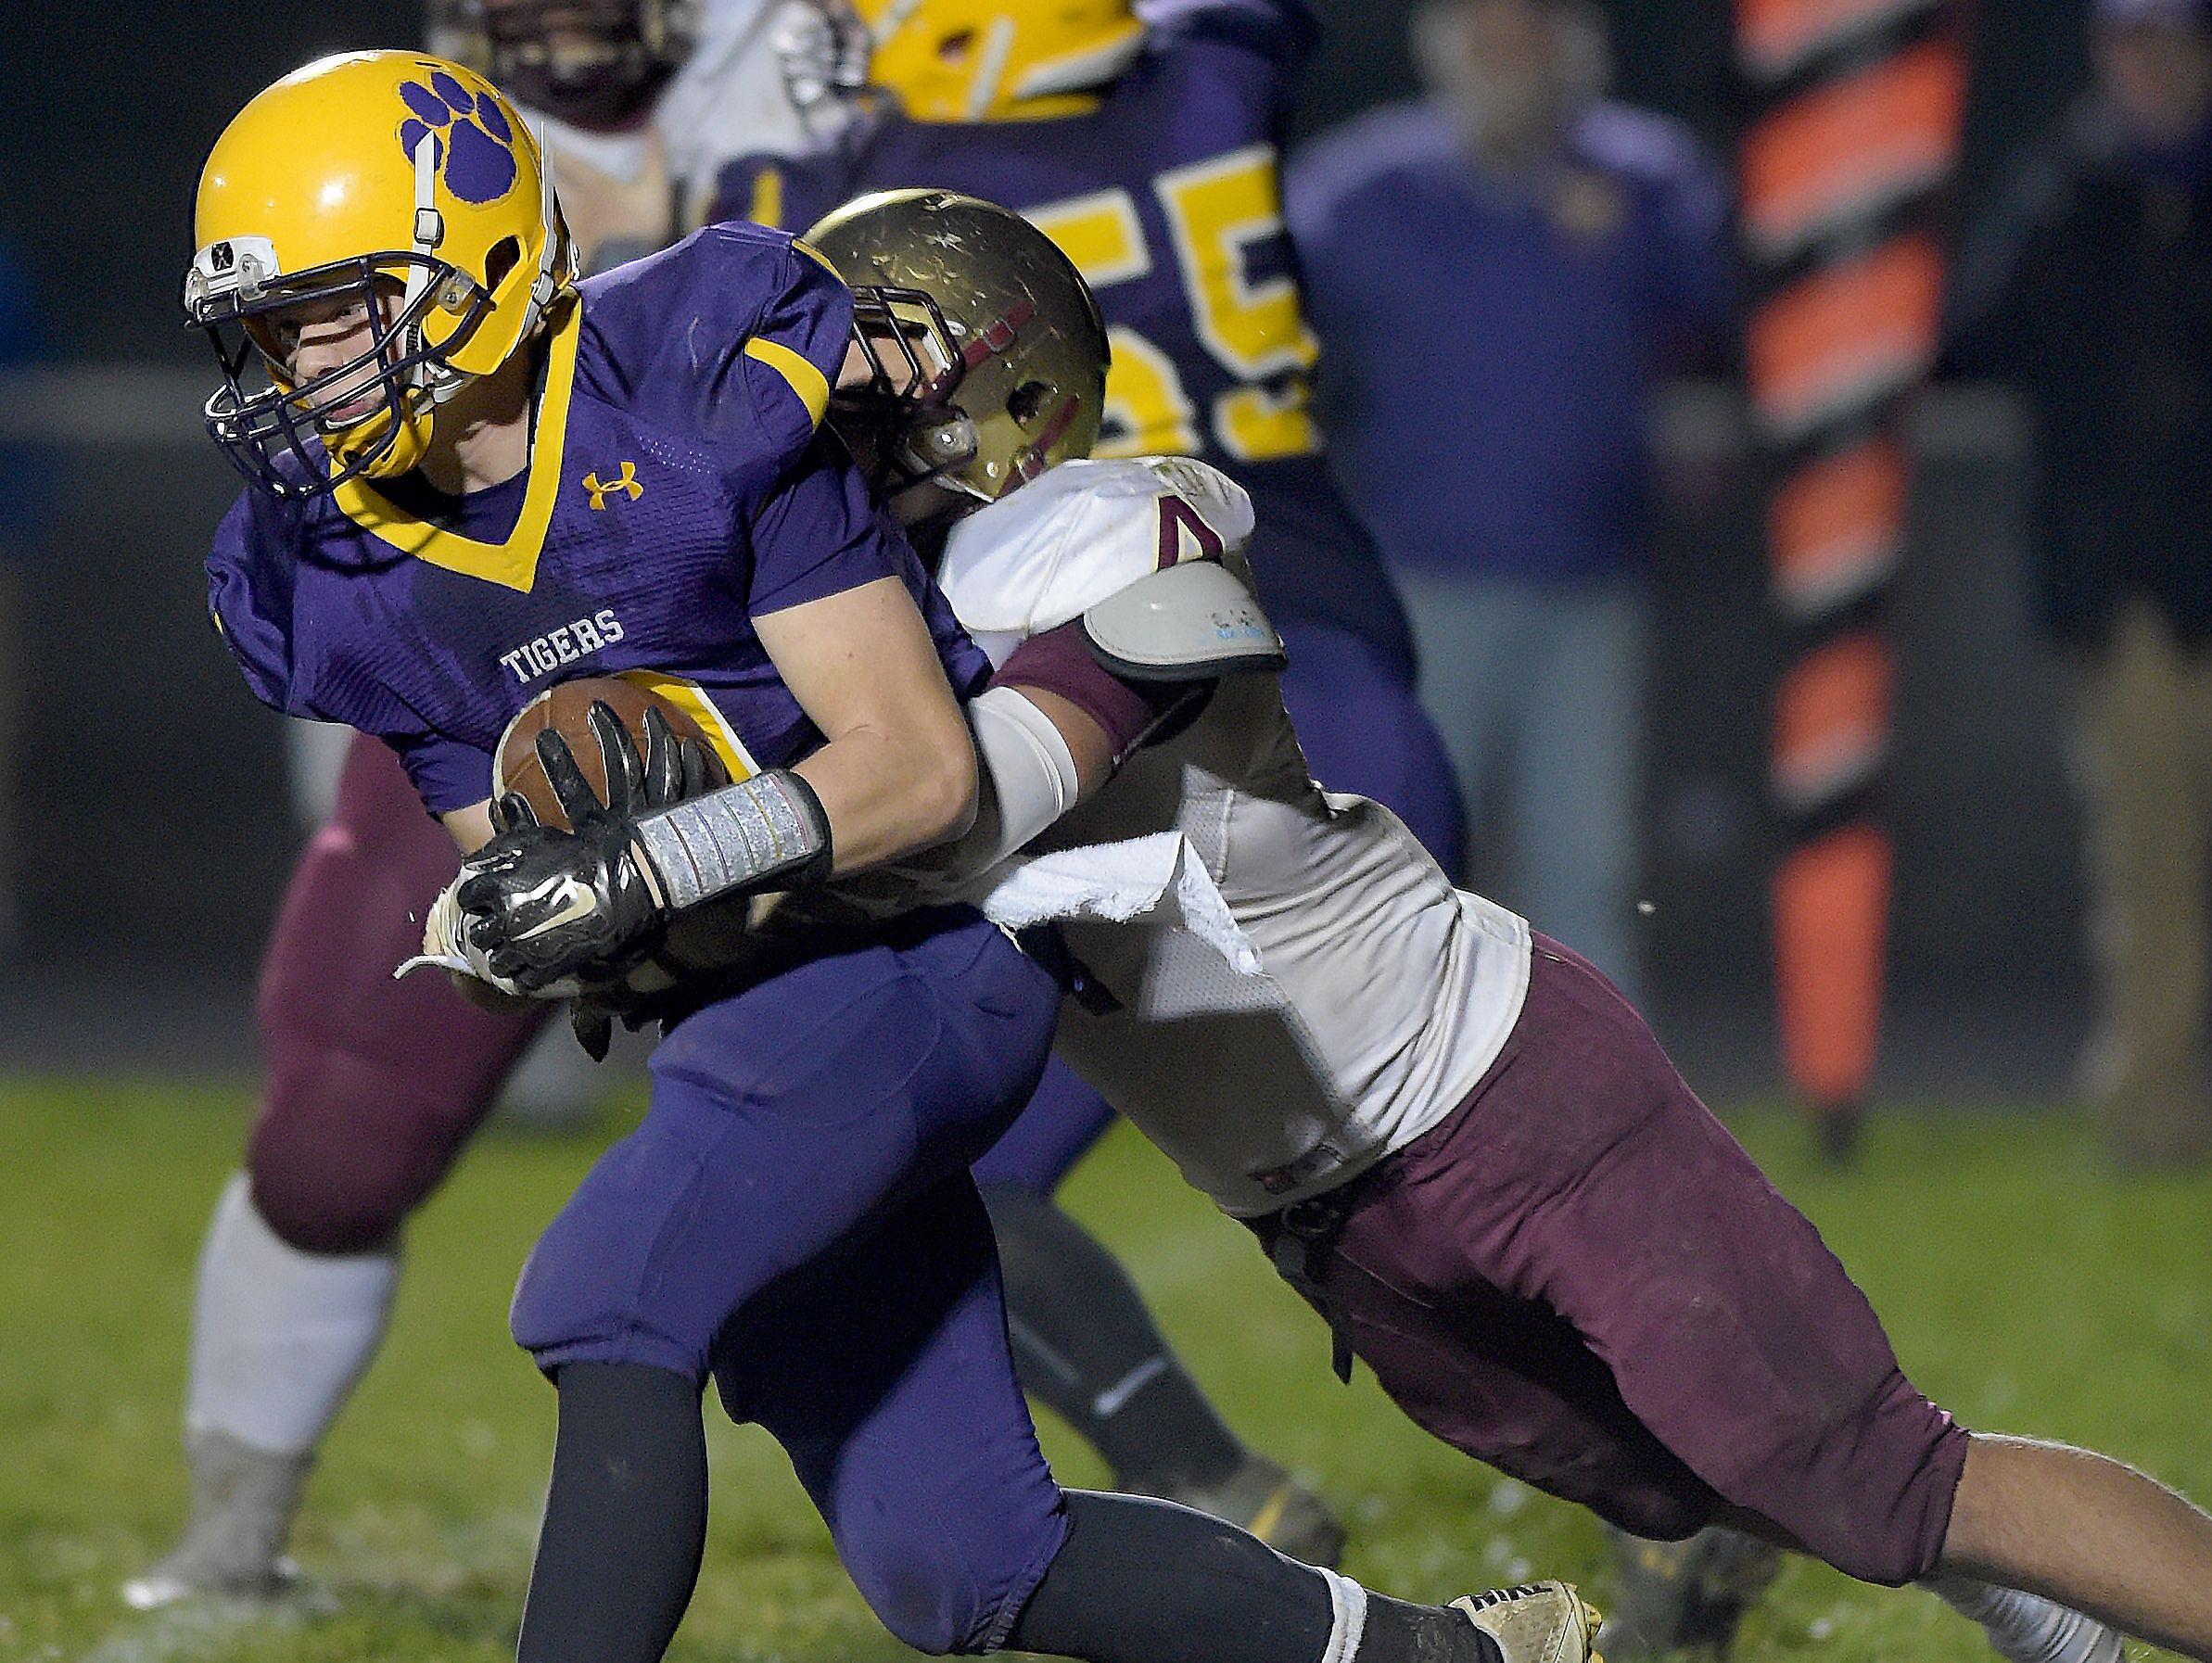 Hagerstown's Mason Hicks drags Indianapolis Lutheran's Bailey Barham during a sectional football game Friday, Nov. 4, 2016 in Hagerstown.